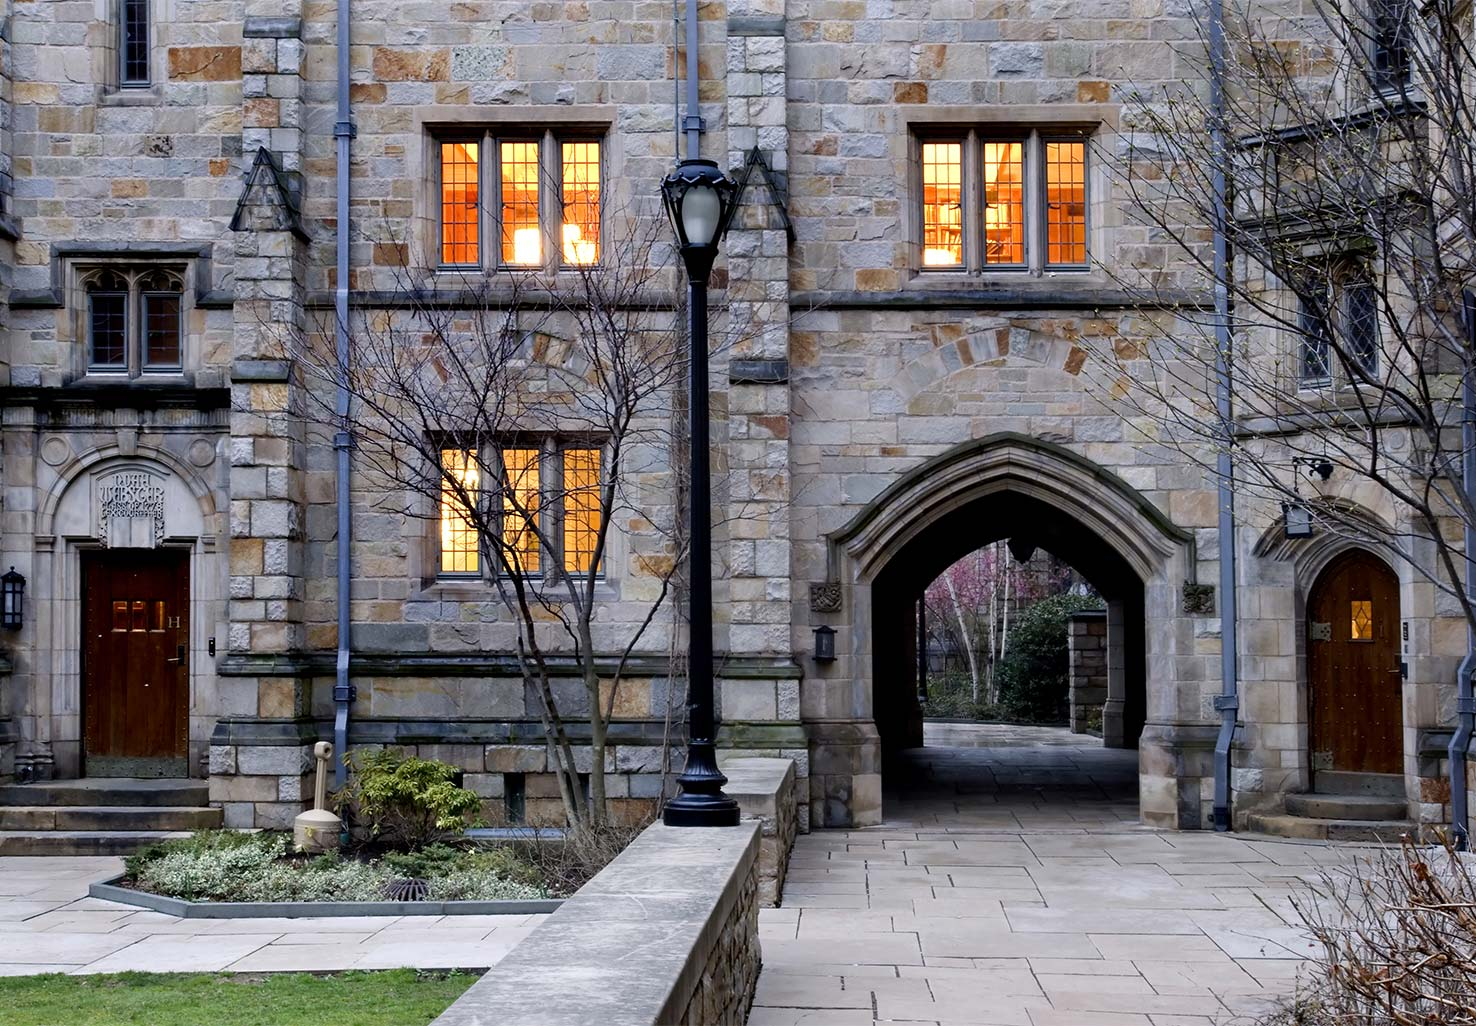 Stone building and walkway at Yale University